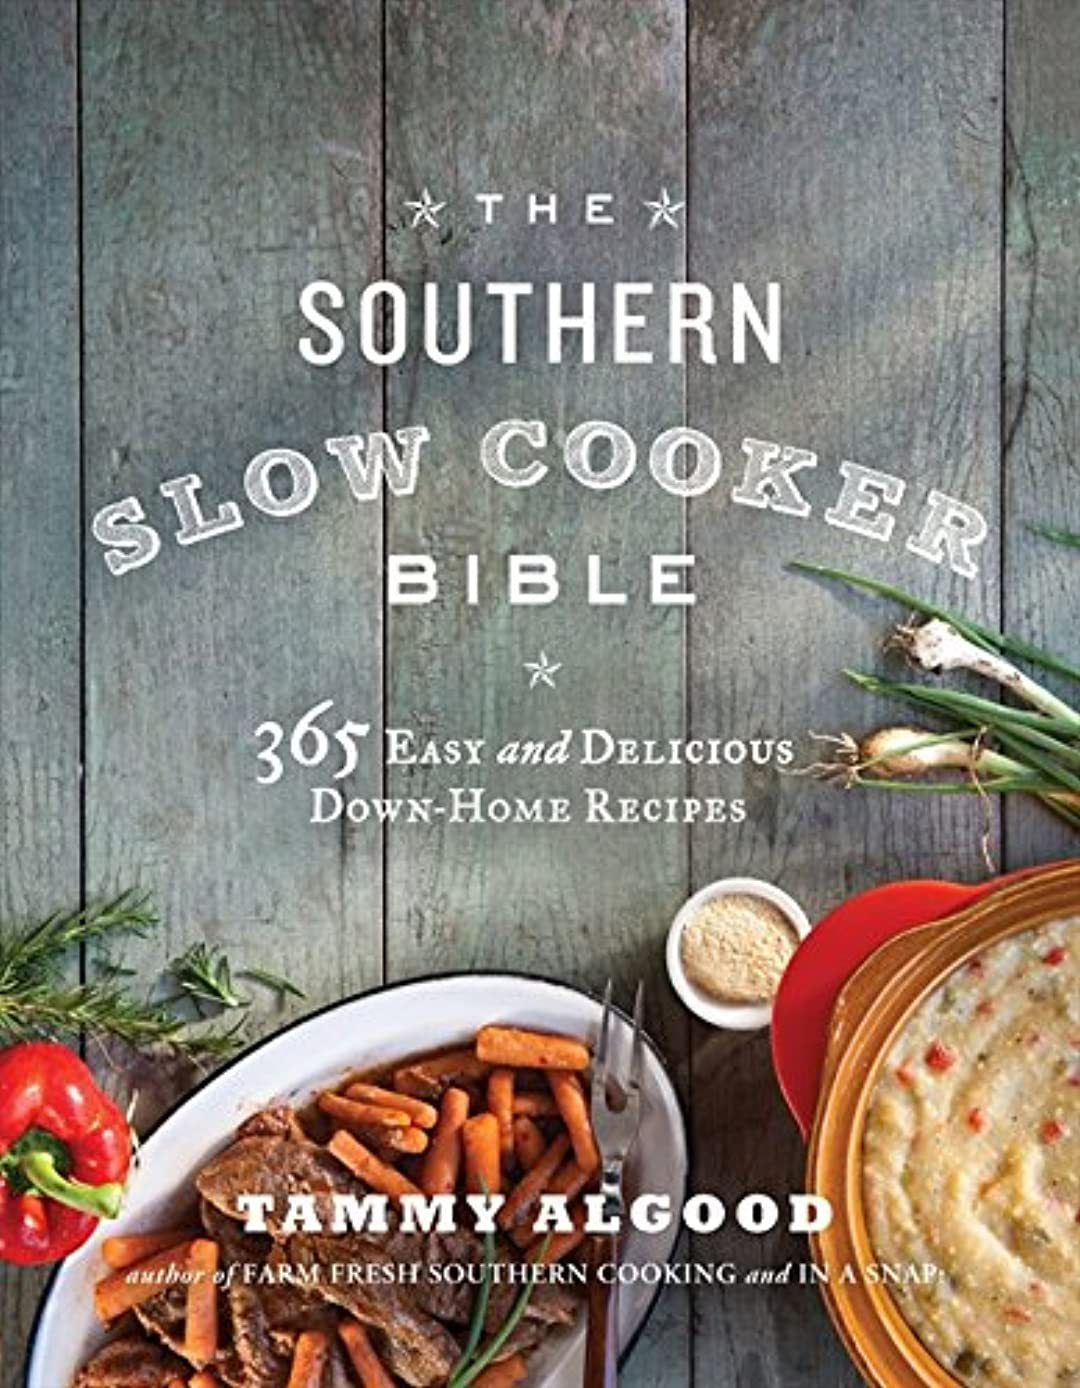 The Southern Slow Cooker Bible: 365 Easy and Delicious Down-Home Recipes